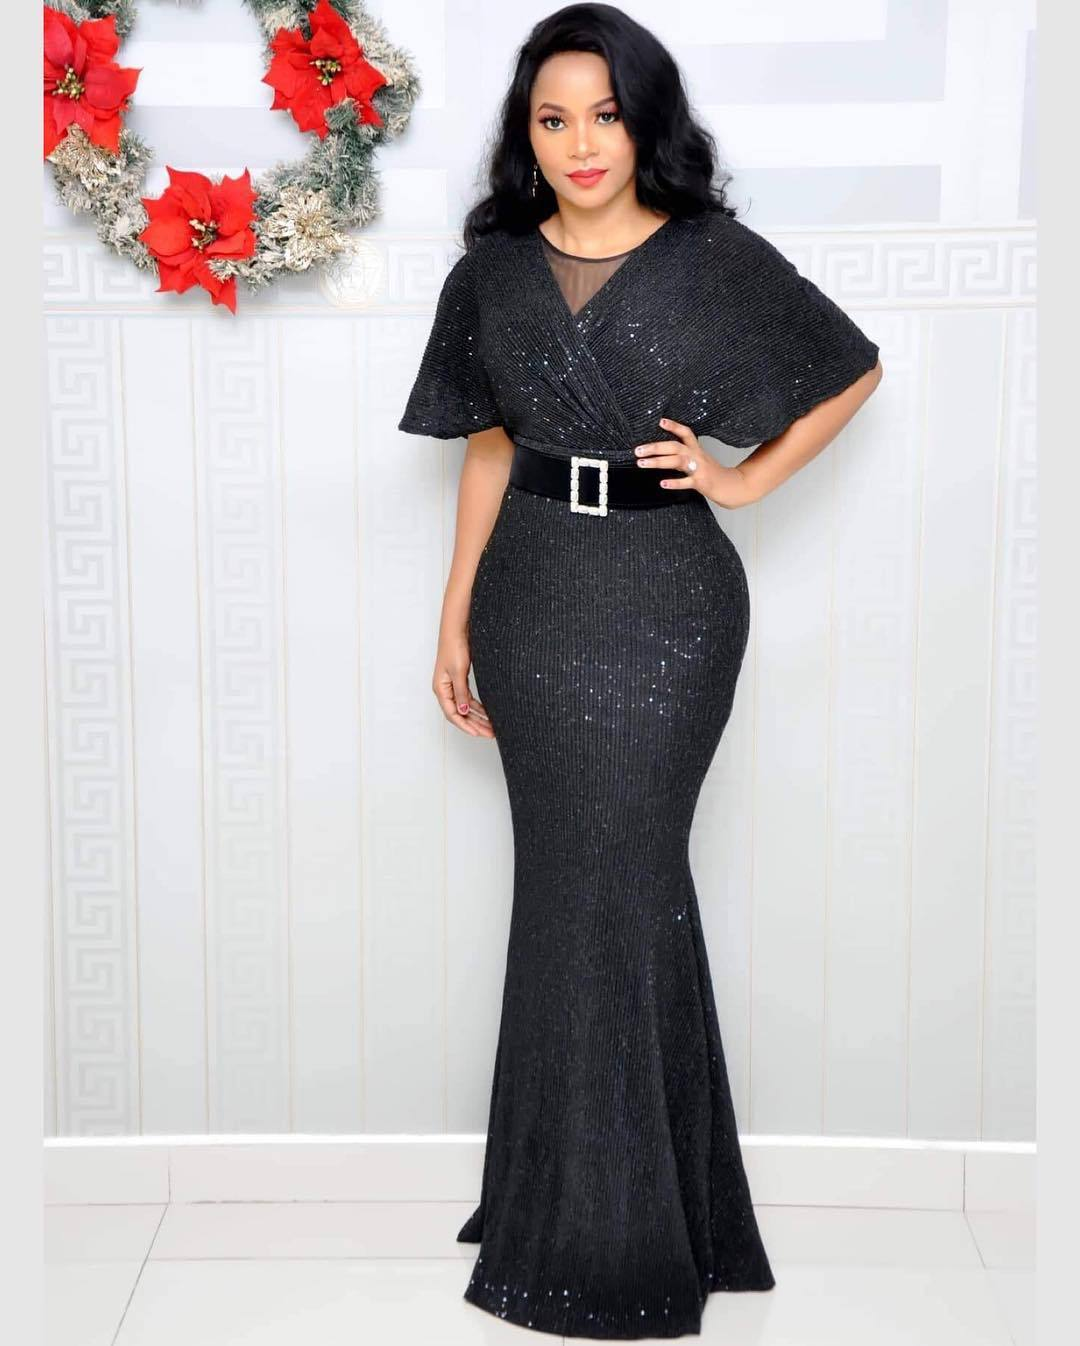 2019 New Autumn Elegent Fashion Style V-neck African Women Plus Size Long Dress